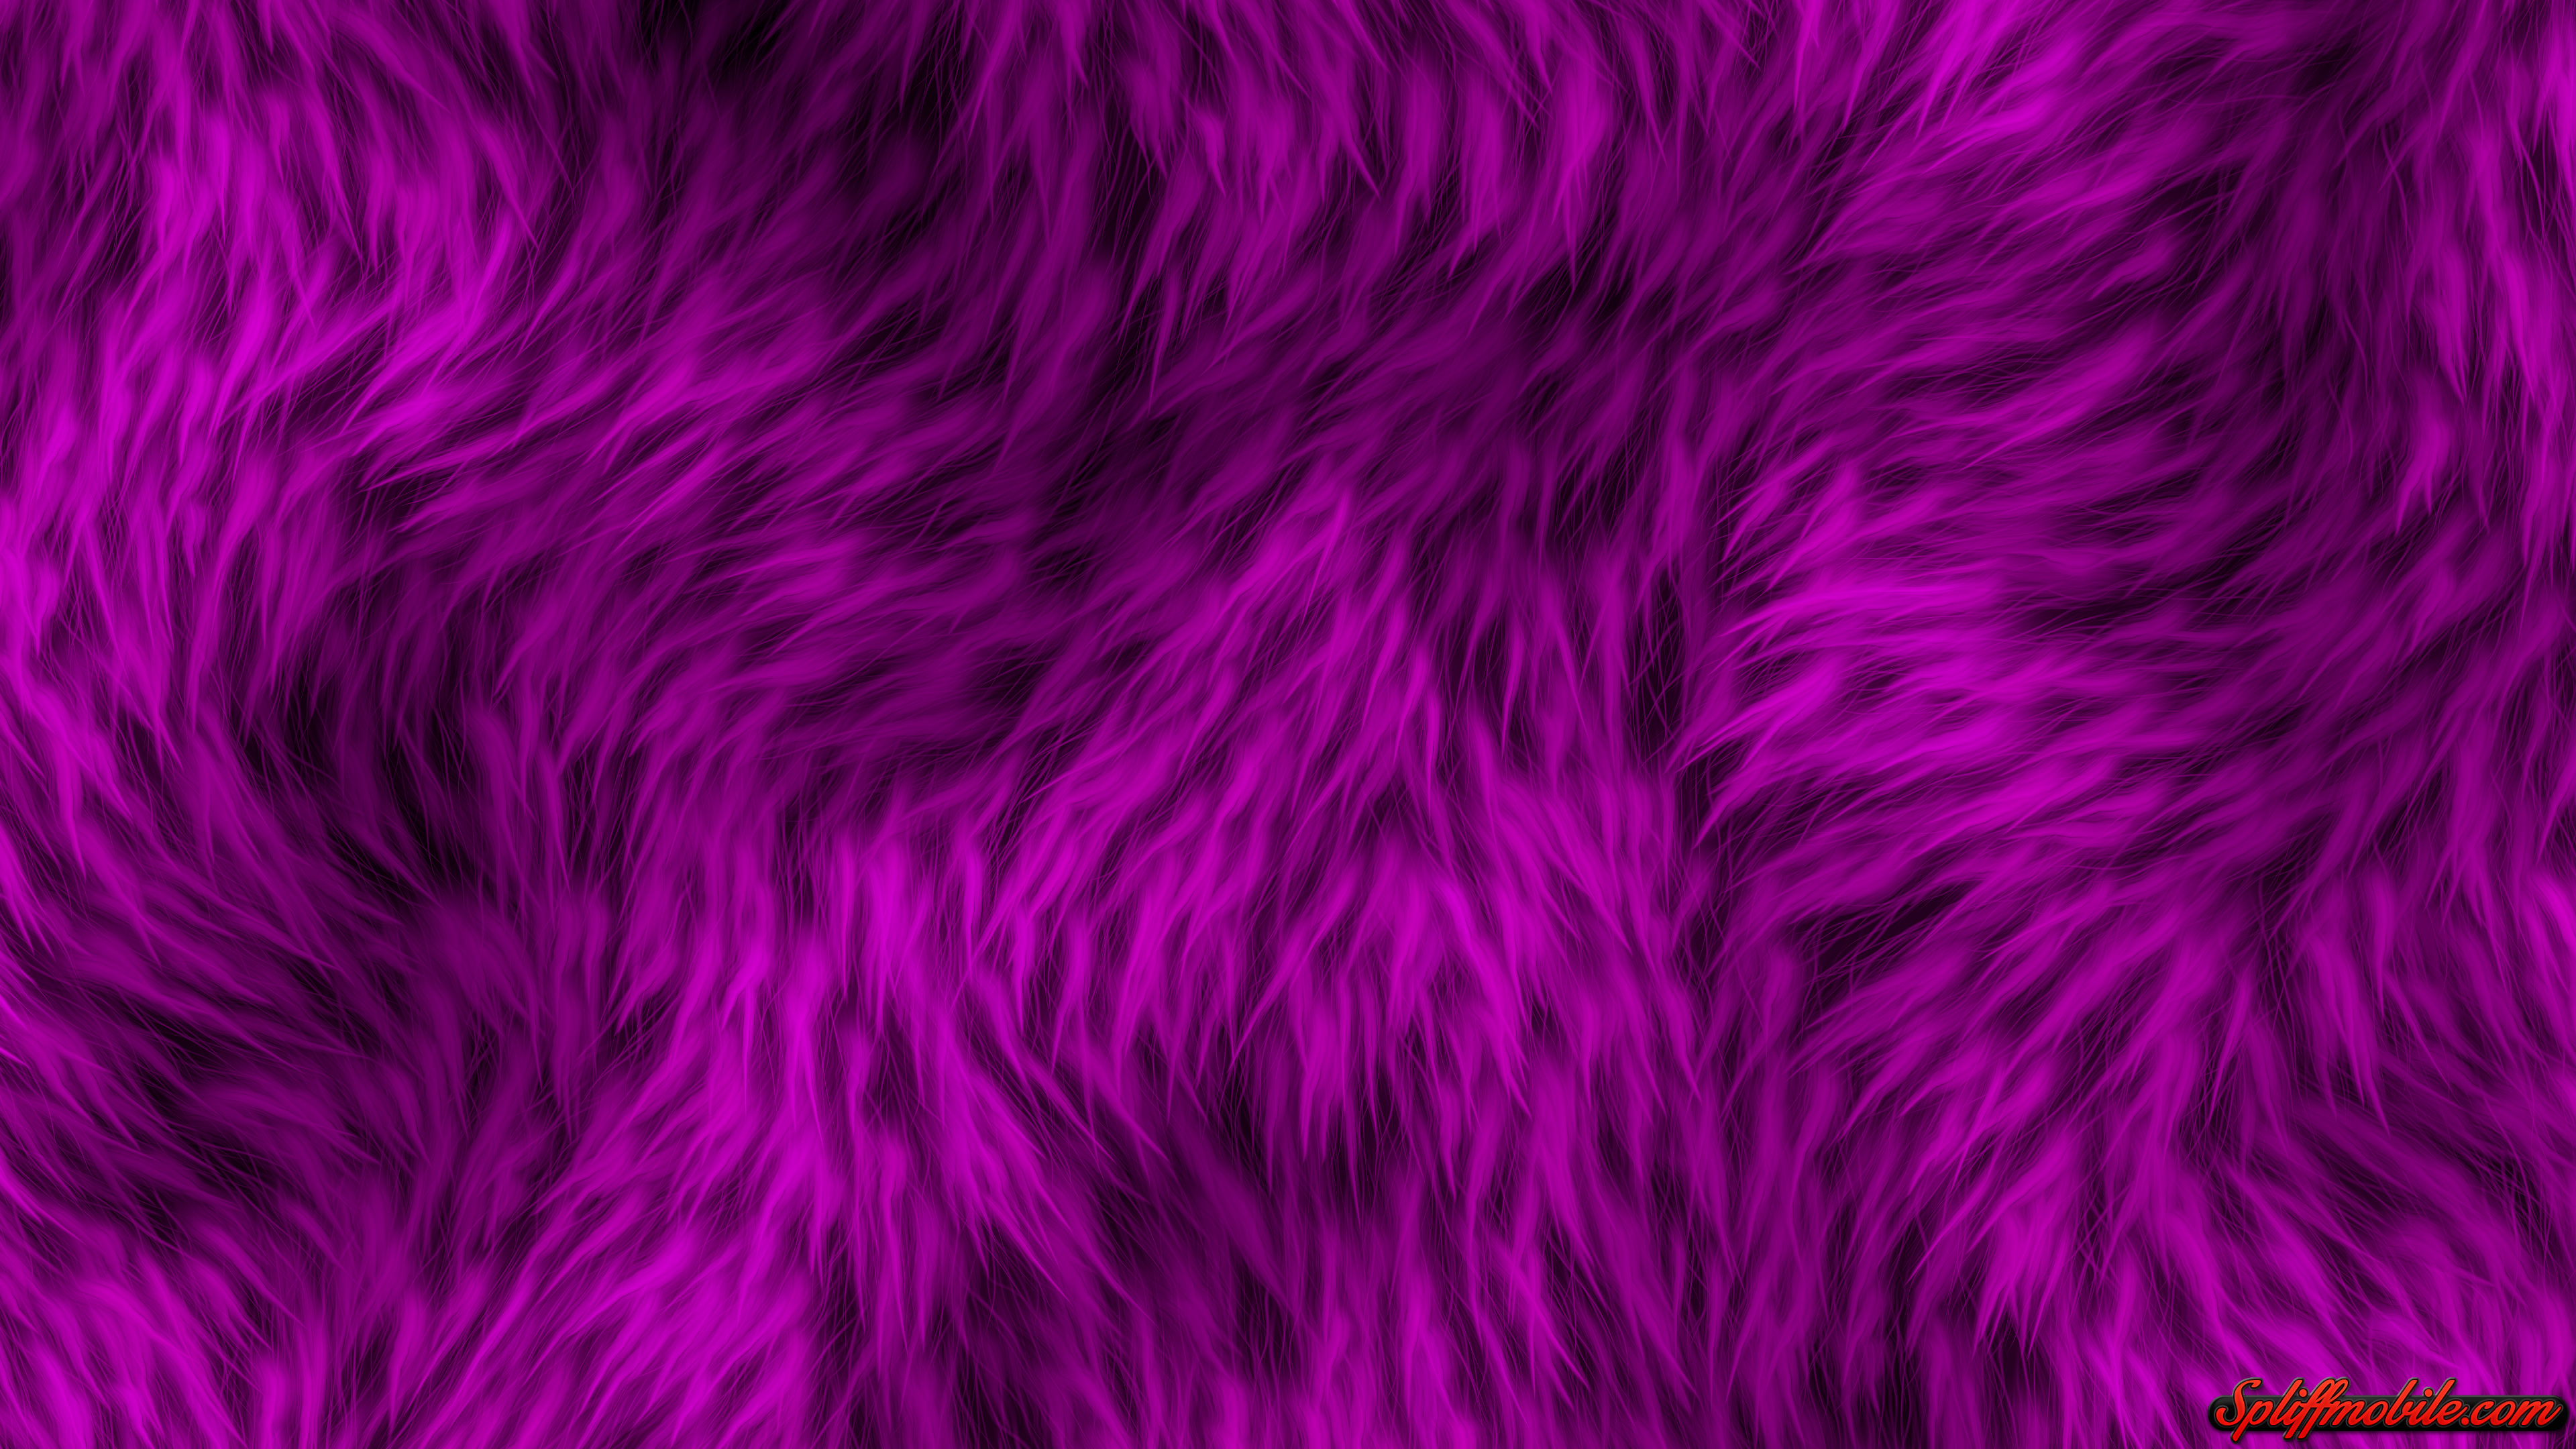 HD Furry Purple Wallpaper 3840x2160